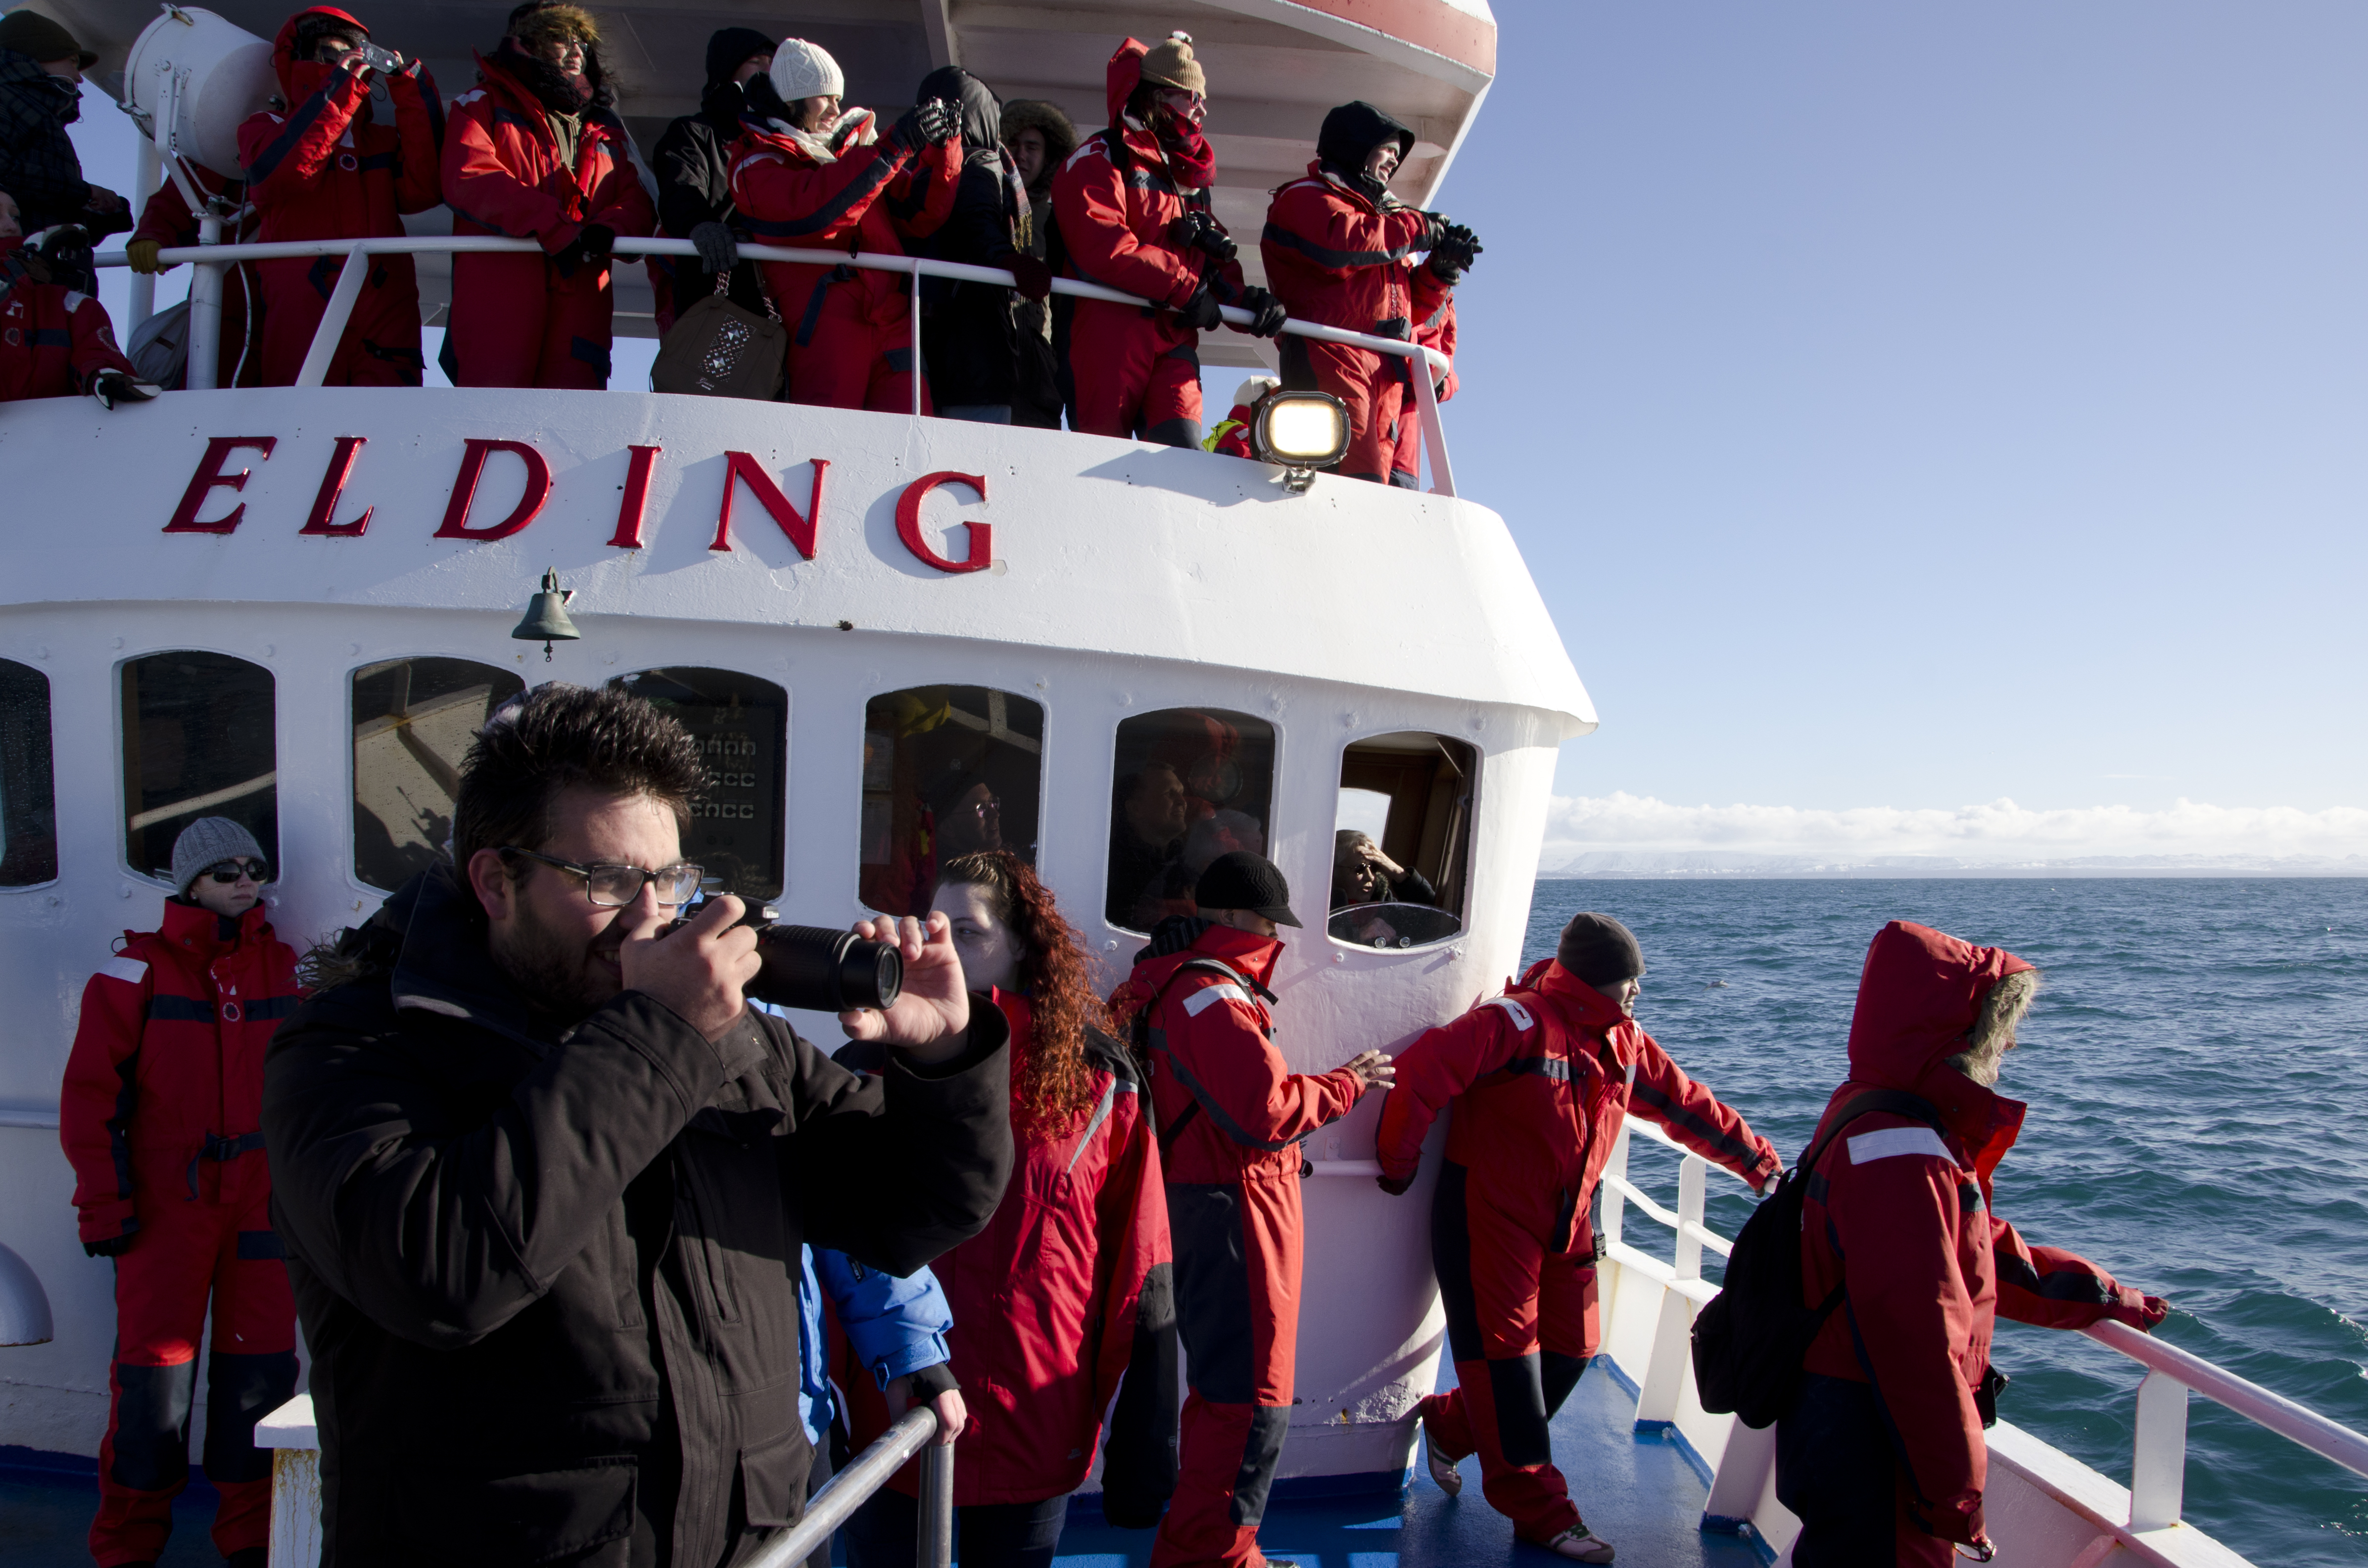 Watch How to Go Whale Watching in Winter video